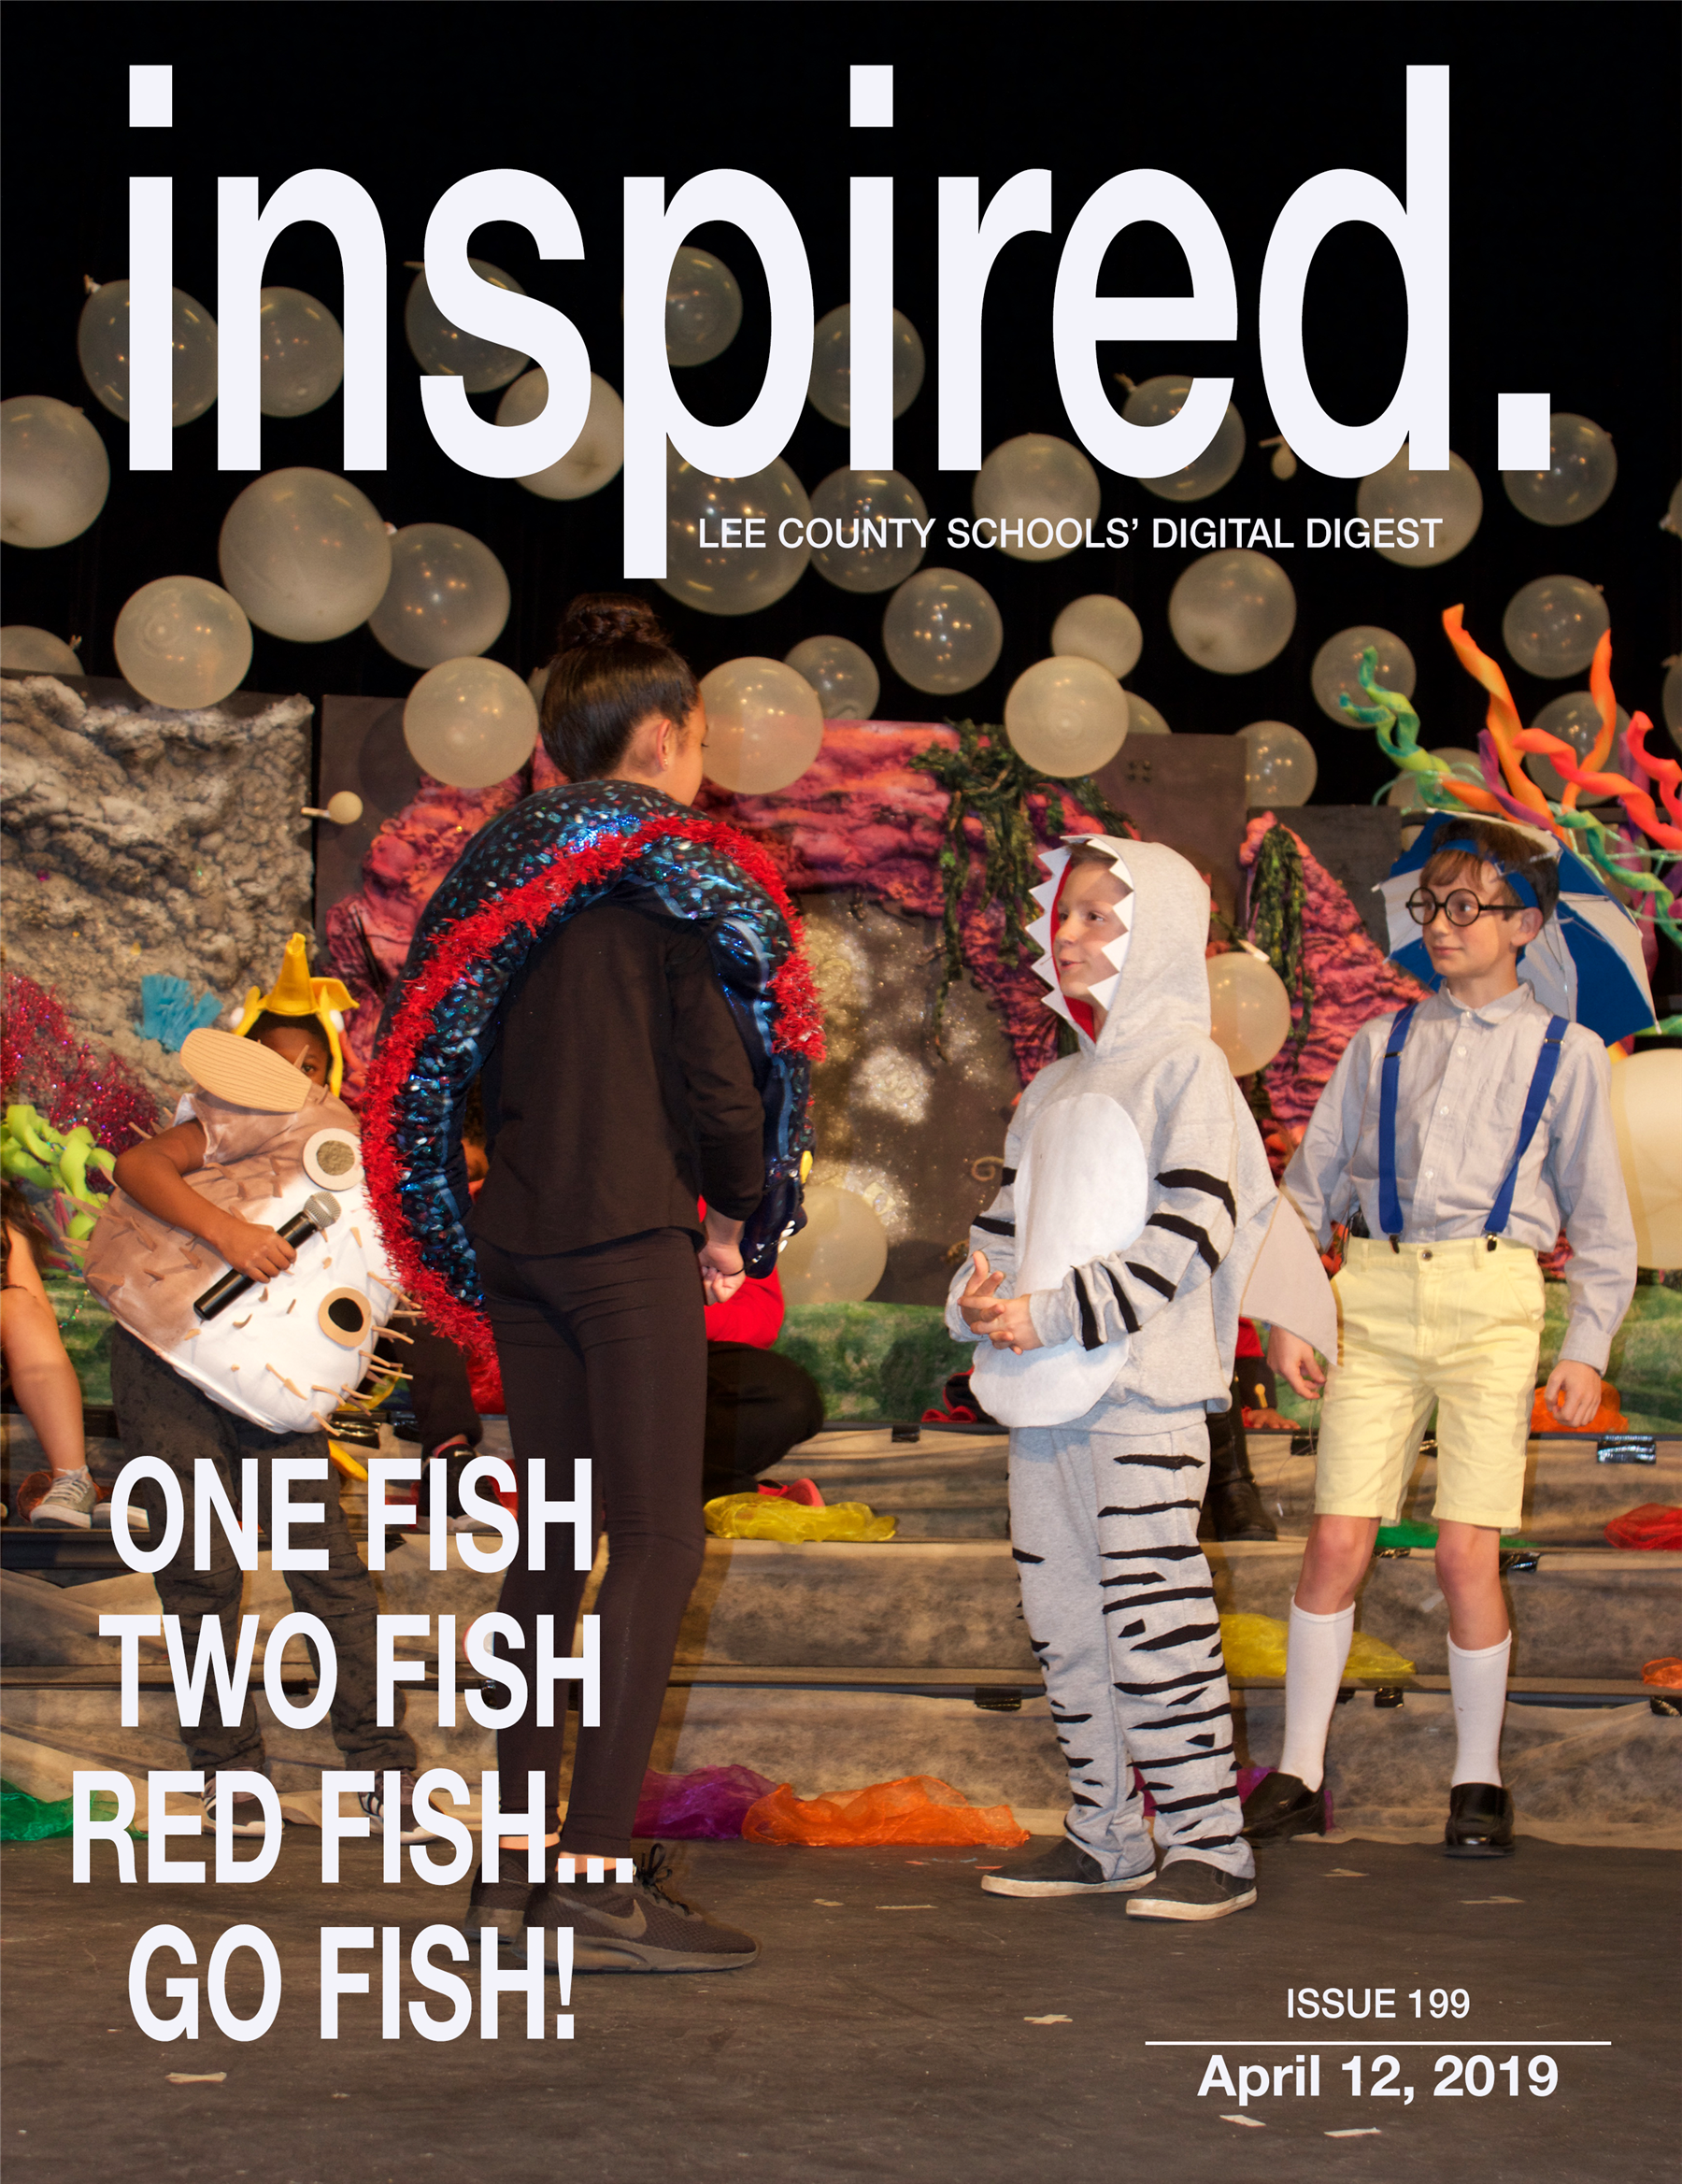 INSPIRED. One Fish, Two Fish, Red Fish...Go Fish!